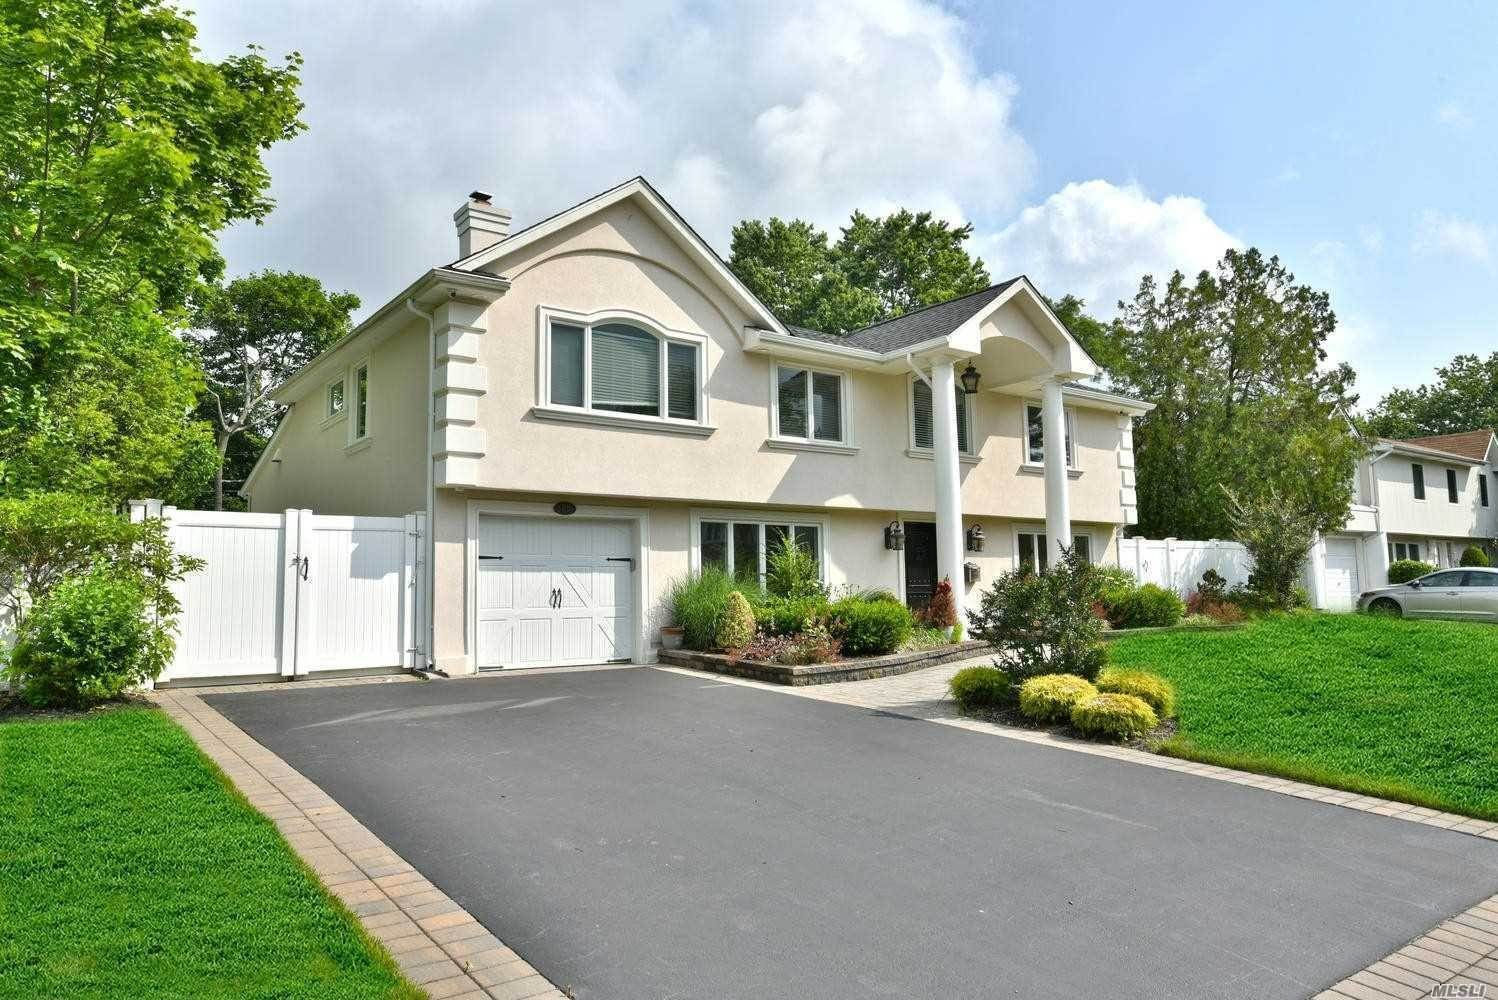 Residential for Sale at 21 Lesley Lane, Old Bethpage, NY 11804 Old Bethpage, New York 11804 United States